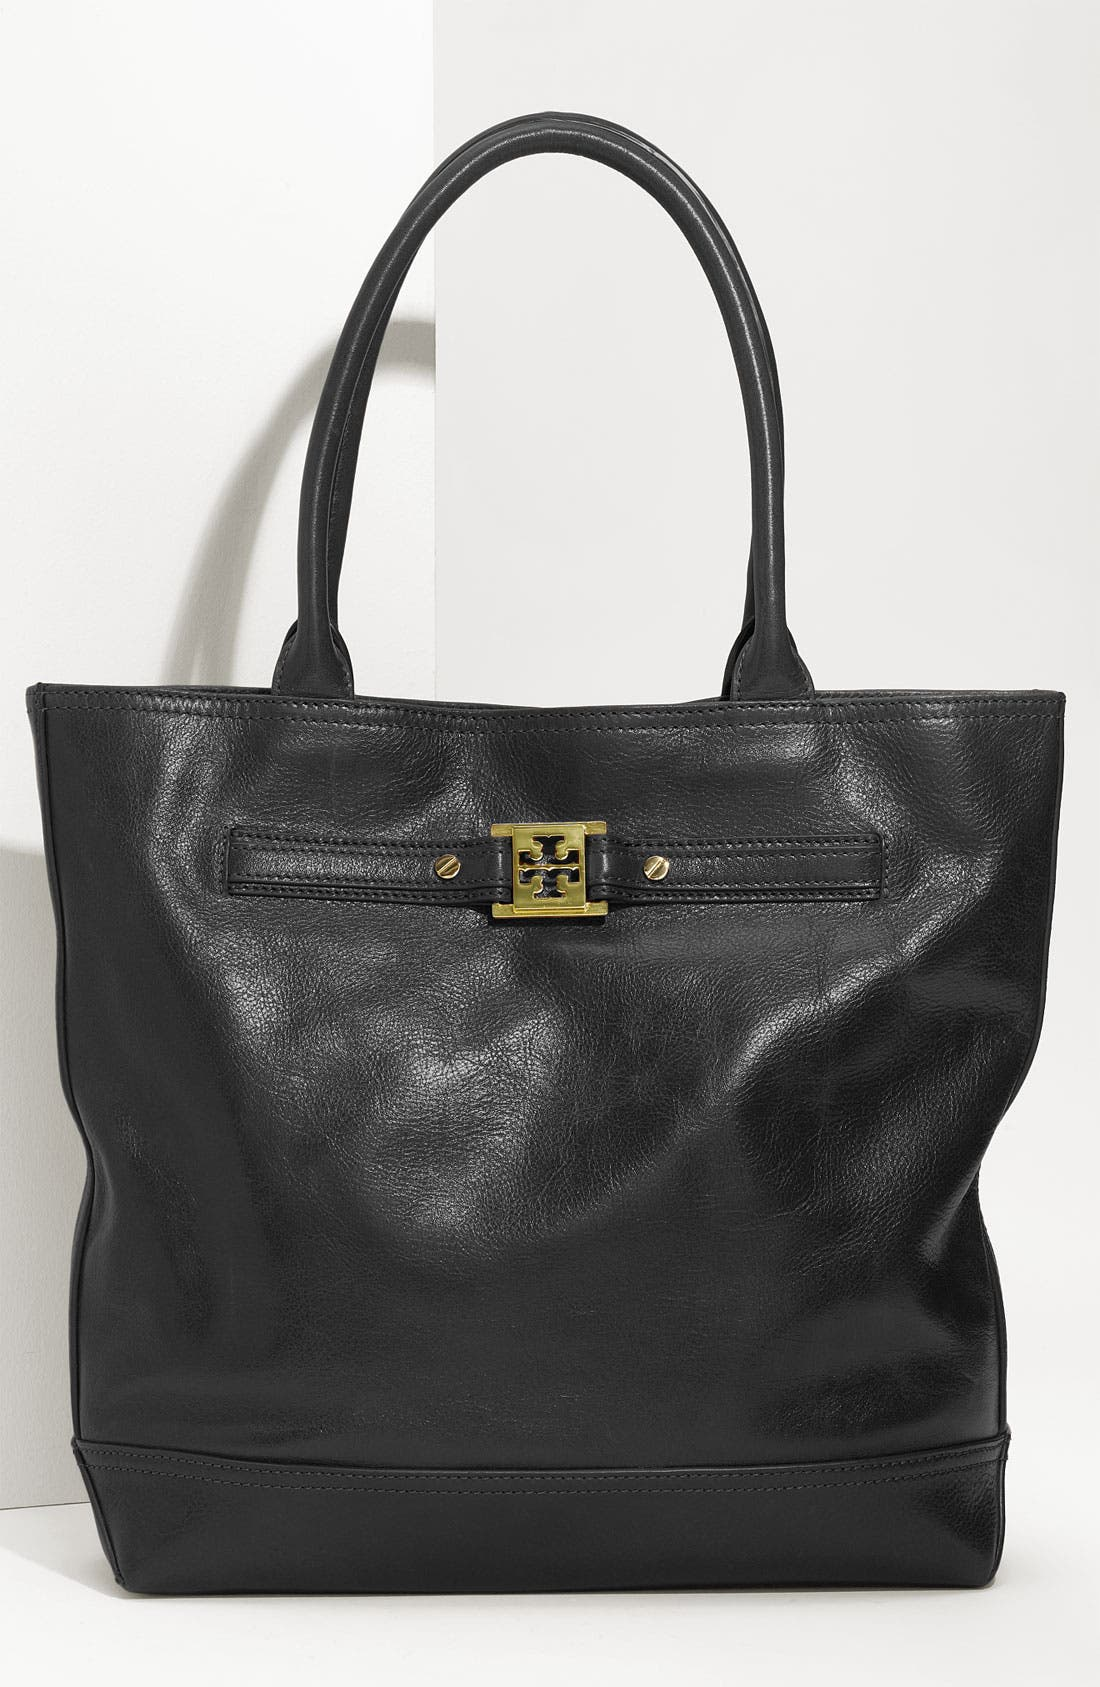 Alternate Image 1 Selected - Tory Burch Leather Tote